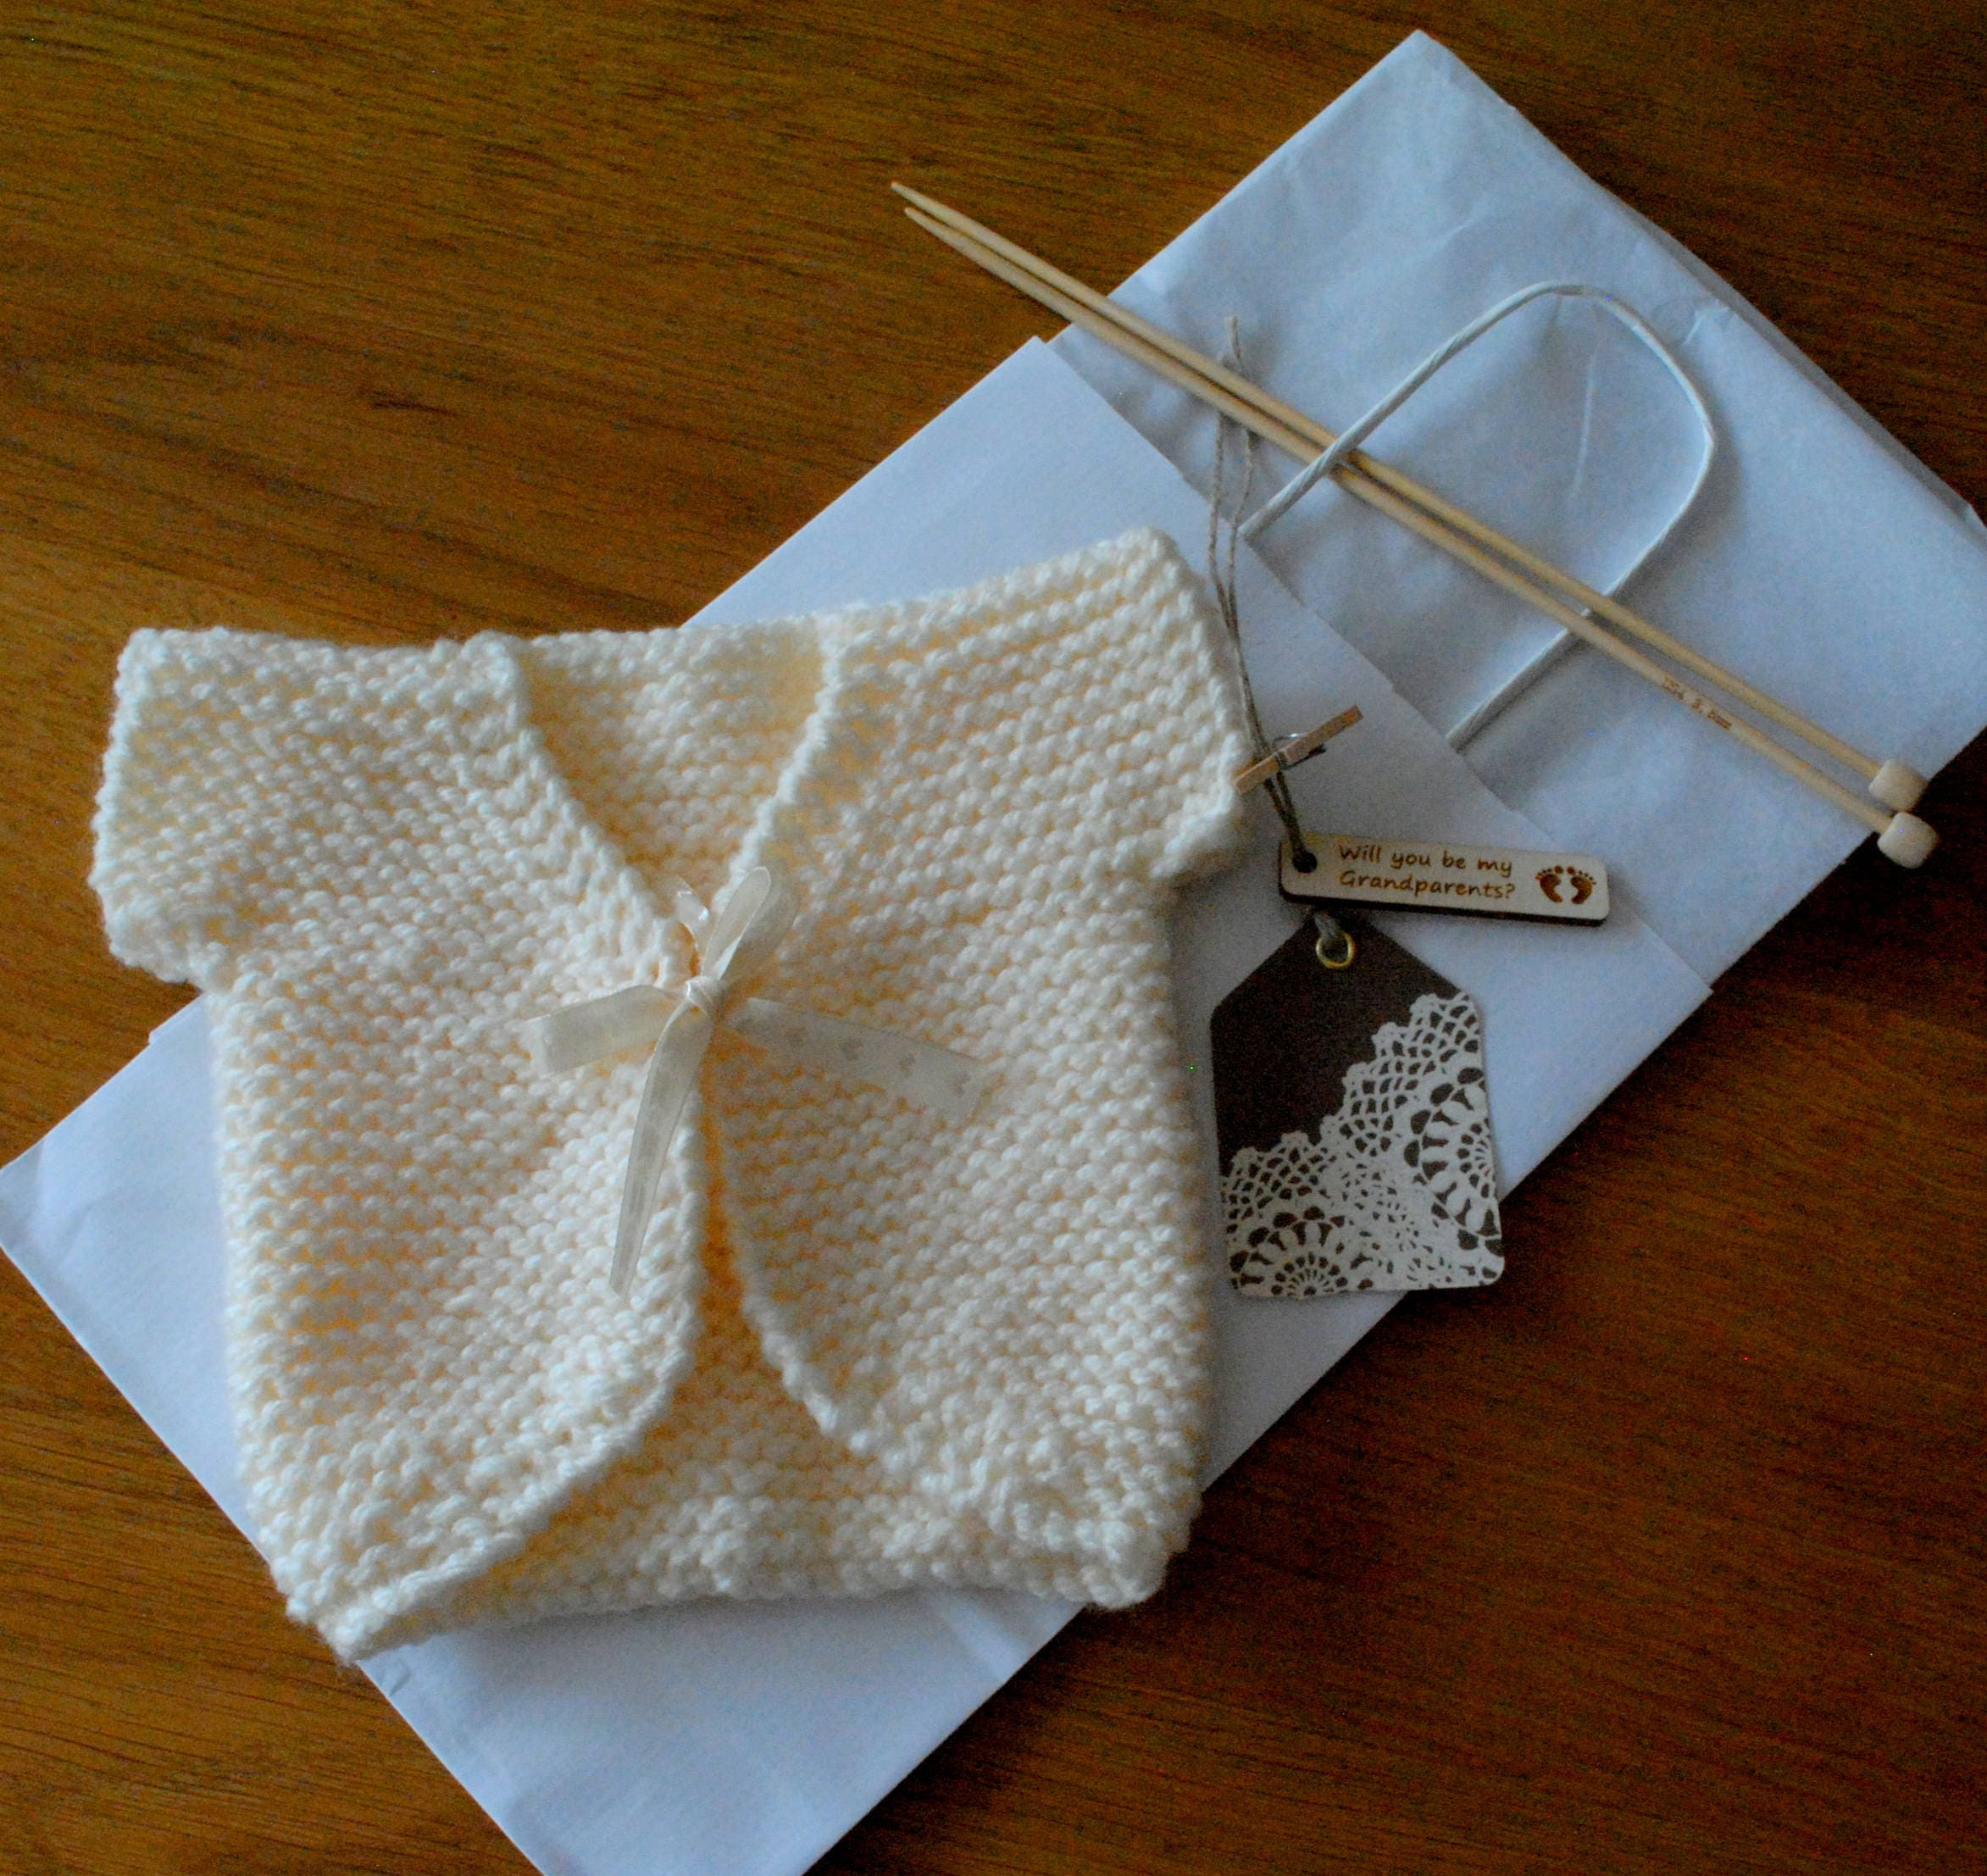 Baby Clothes Pregnancy Reveal Grandparents Baby Keepsake Gift Hand Knitted Engraved Wooden Tag Bag Miniature Jacket Baby Doll Cardigan